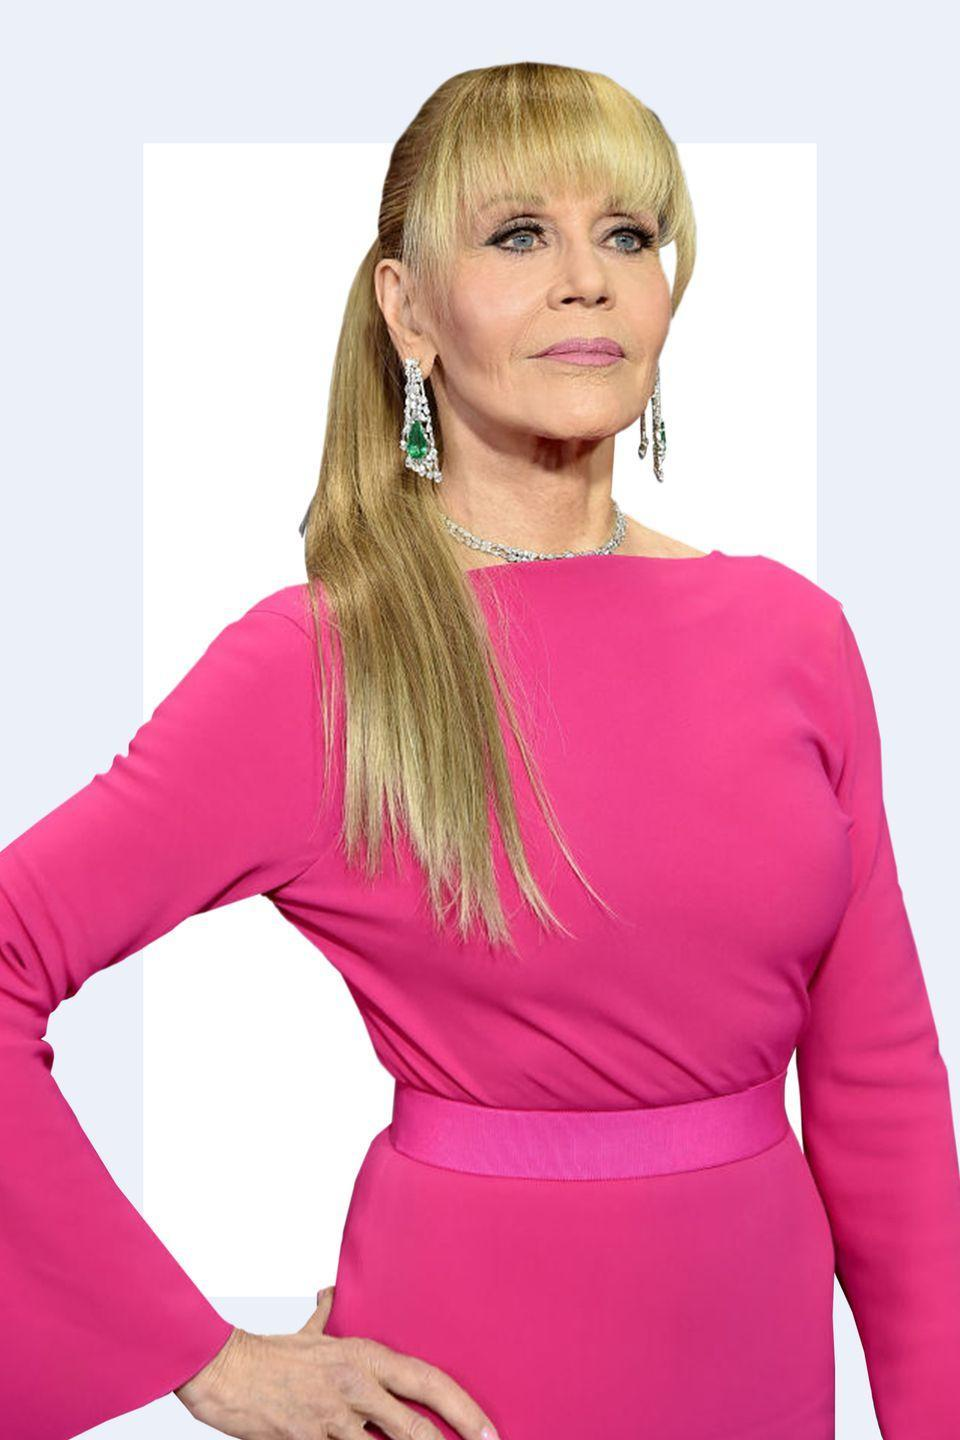 """<p>""""Jane Fonda wore this amazing Brandon Maxwell gown to the 2017 Emmys and it was a huge pop of color. Since seeing that on her I'm so into it, especially on older people. It's <strong>sophisticated and young</strong> but not immature or obnoxious."""" -<em><a rel=""""nofollow noopener"""" href=""""http://www.andrewgelwicks.com/"""" target=""""_blank"""" data-ylk=""""slk:Andrew Gelwicks"""" class=""""link rapid-noclick-resp"""">Andrew Gelwicks</a></em></p>"""